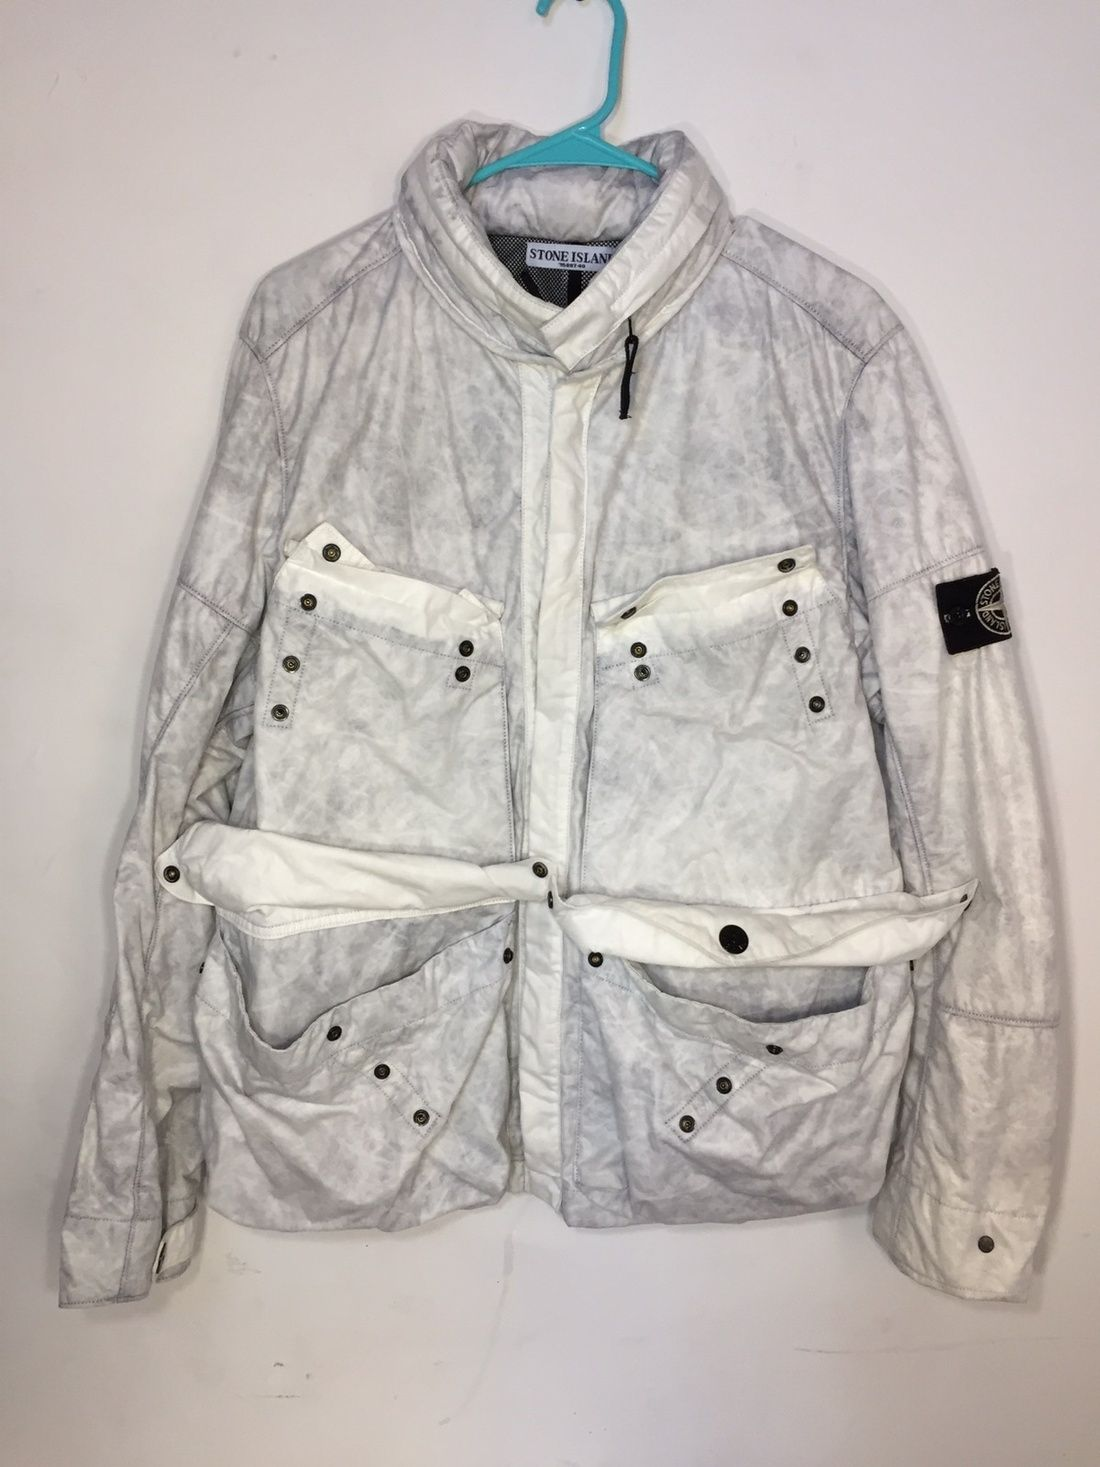 53756132 Stone Island Archive Tyvek Jacket Size m - Light Jackets for Sale - Grailed